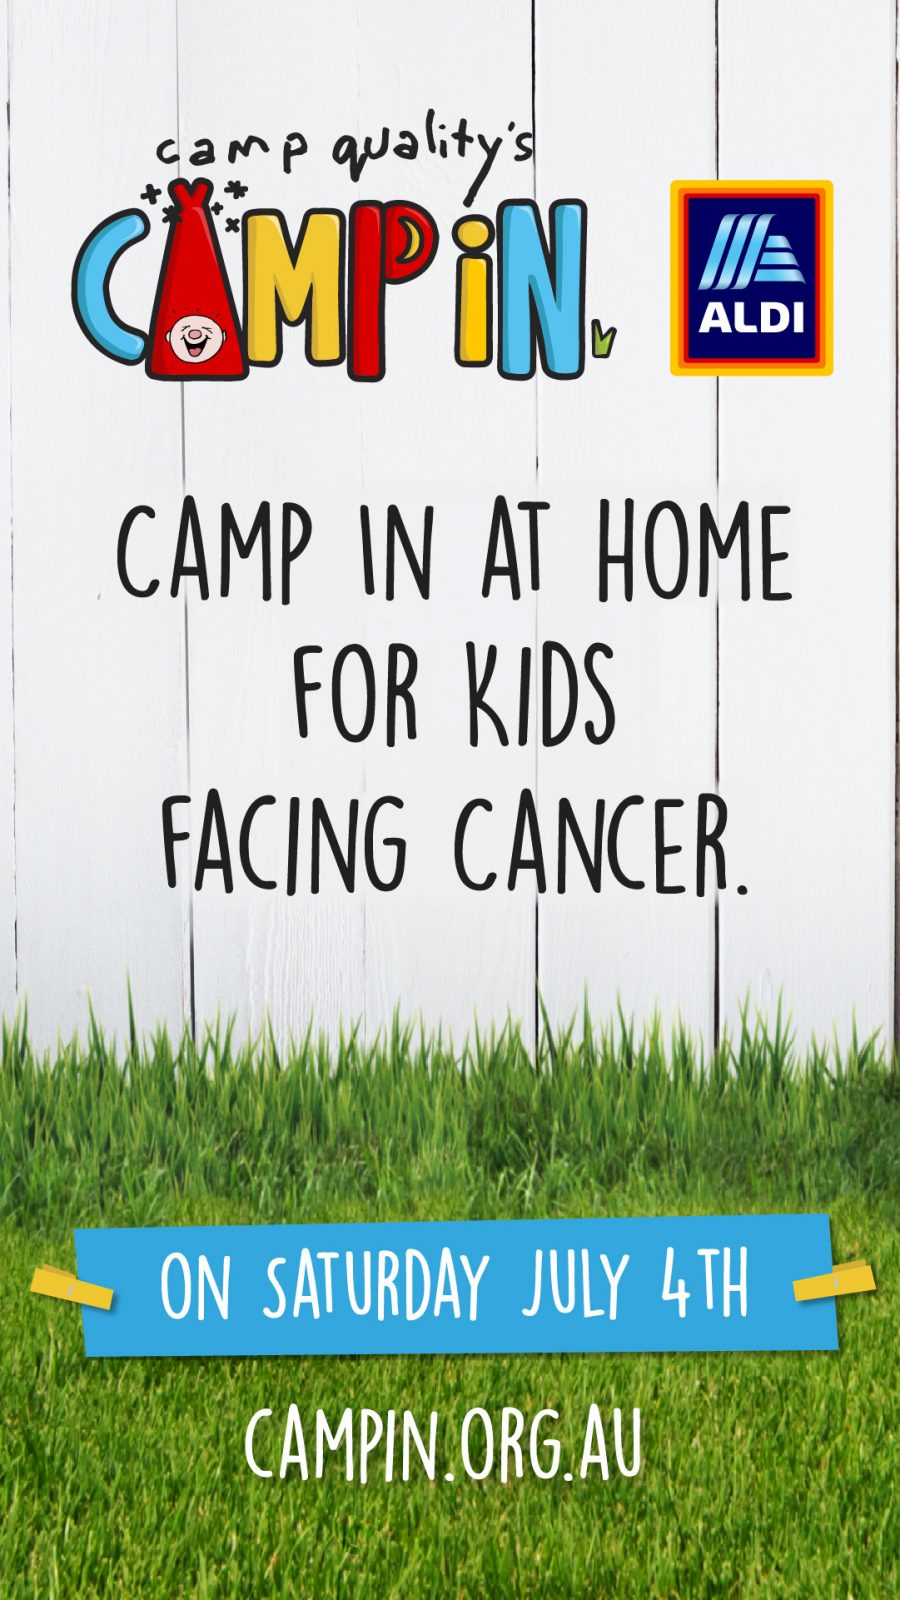 Help Support Camp Quality